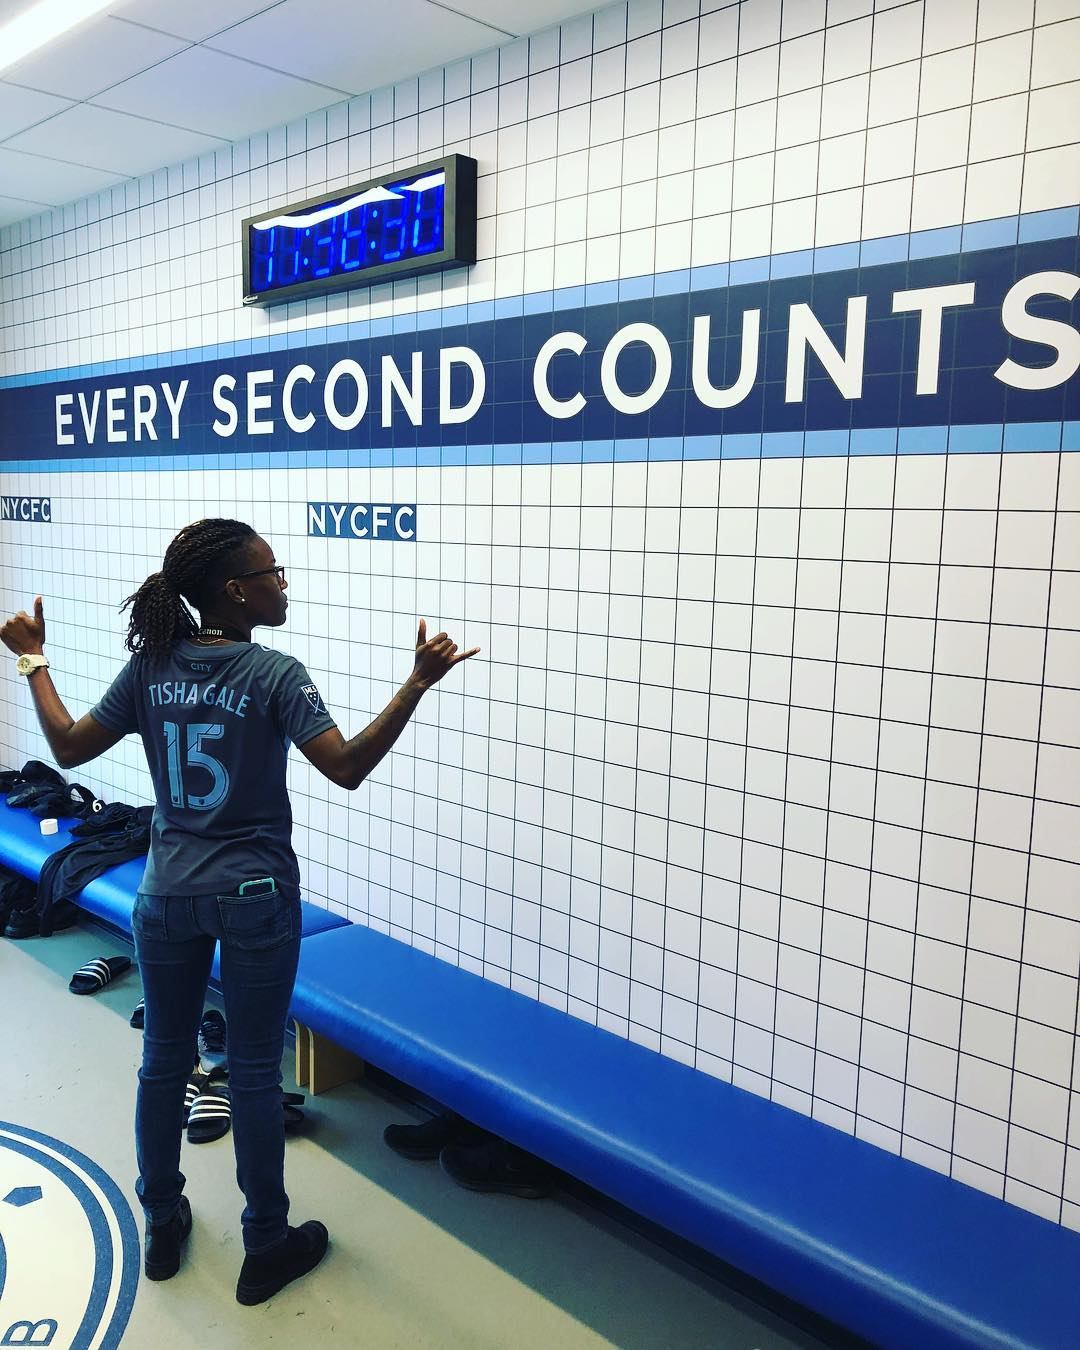 Every second counts🤙🏾 💙 #nycfc